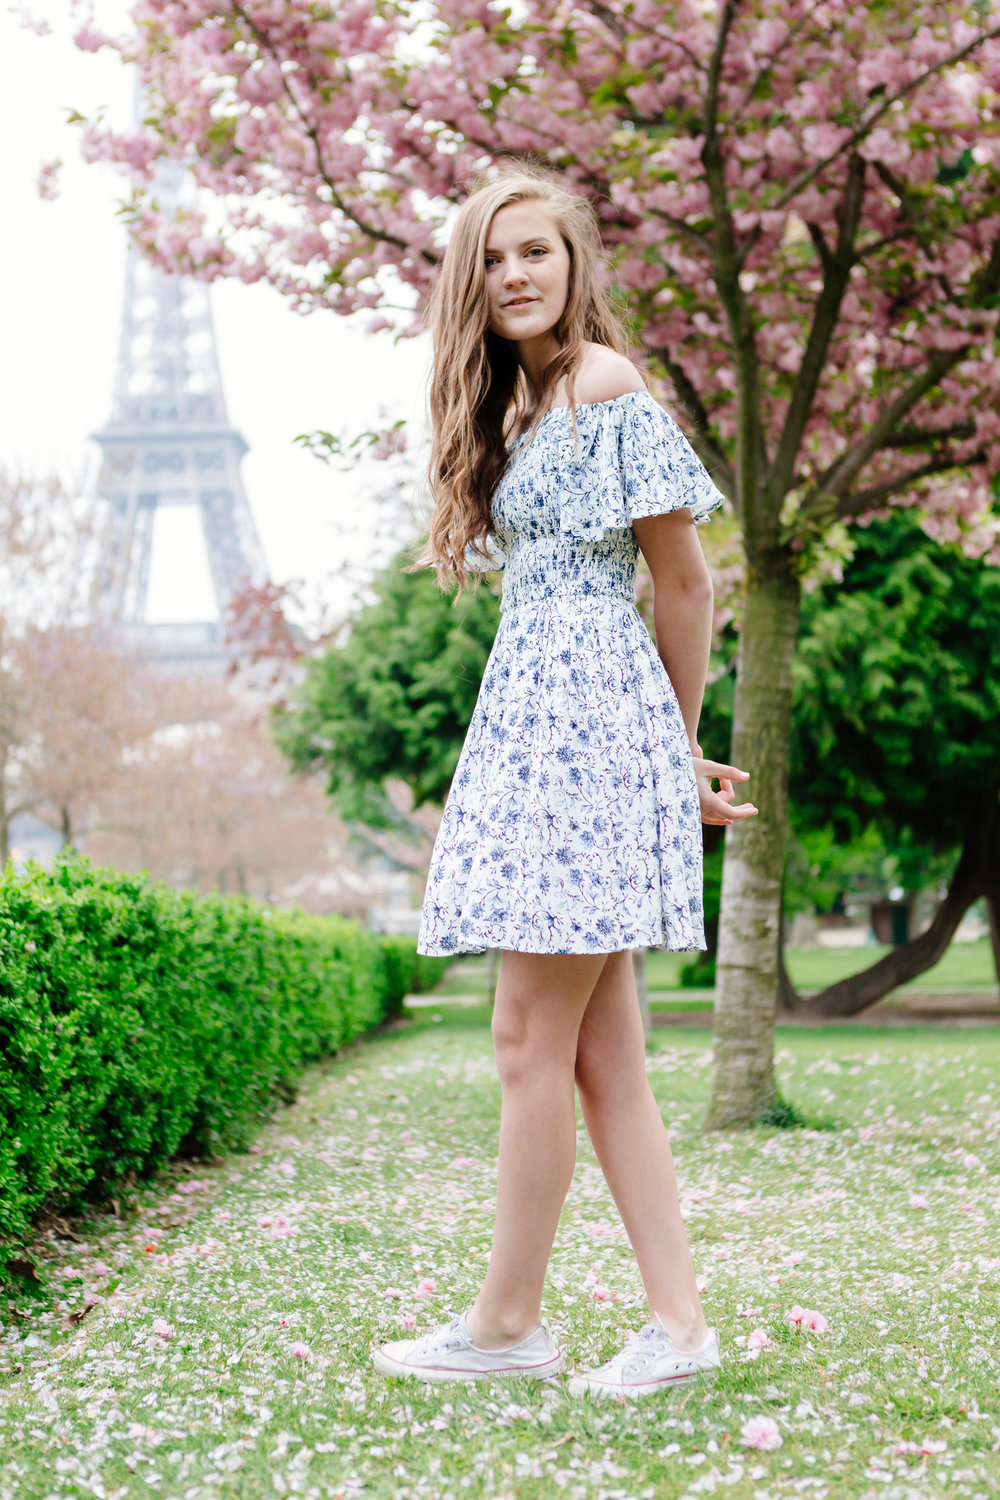 Sweet sixteen in cherry blossoms girl portrait at Trocadero and the Eiffel Tower by Paris Photographer Federico Guendel IheartParisfr